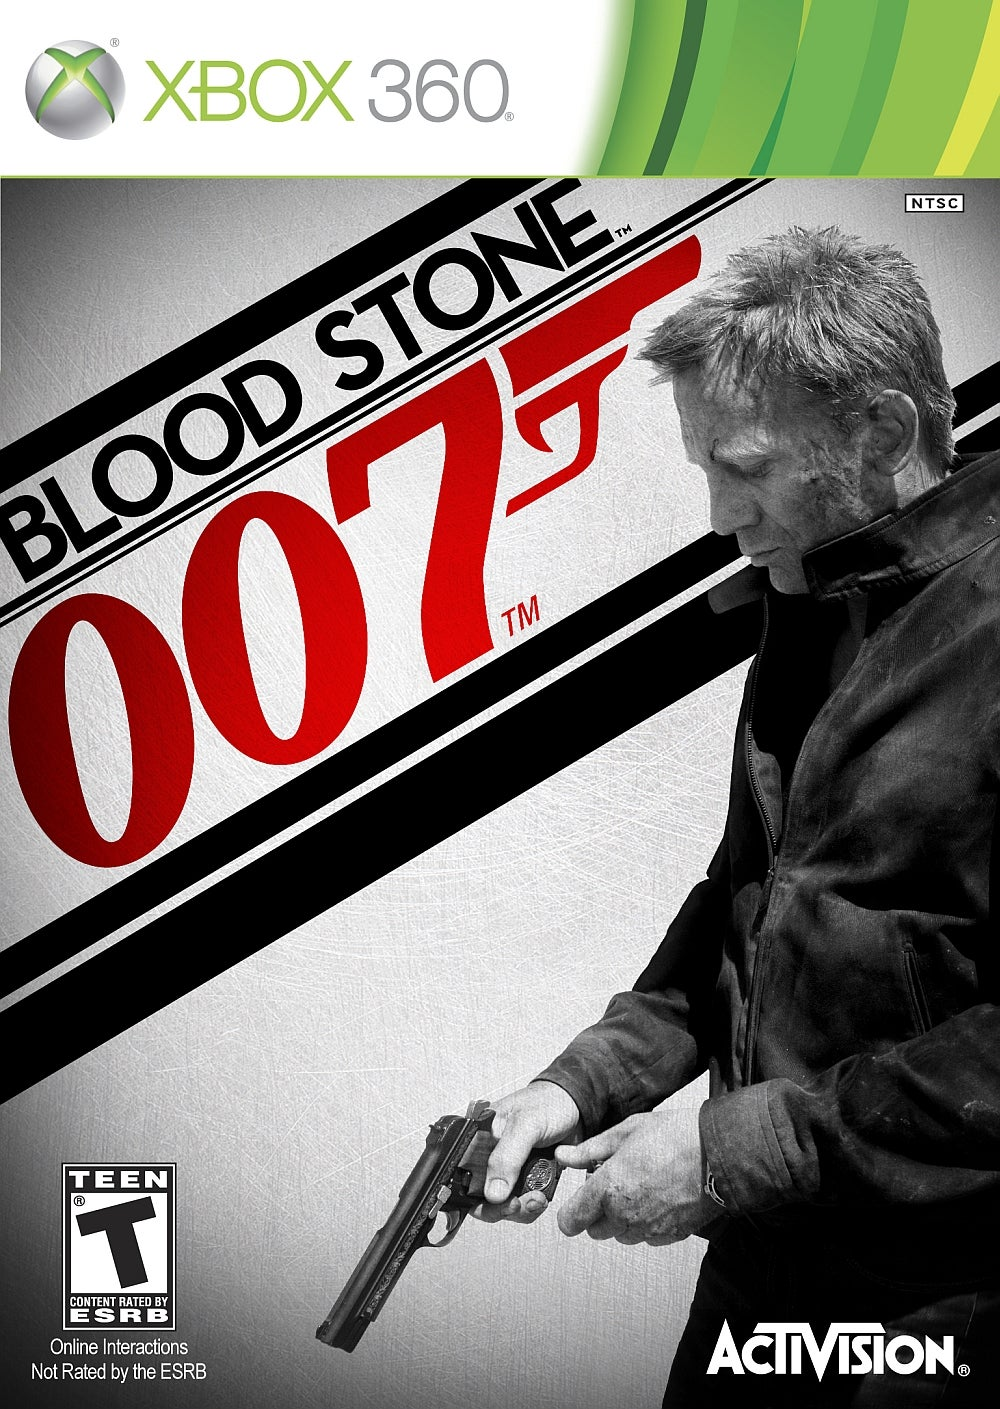 James Bond 007 Blood Stone Xbox 360 IGN